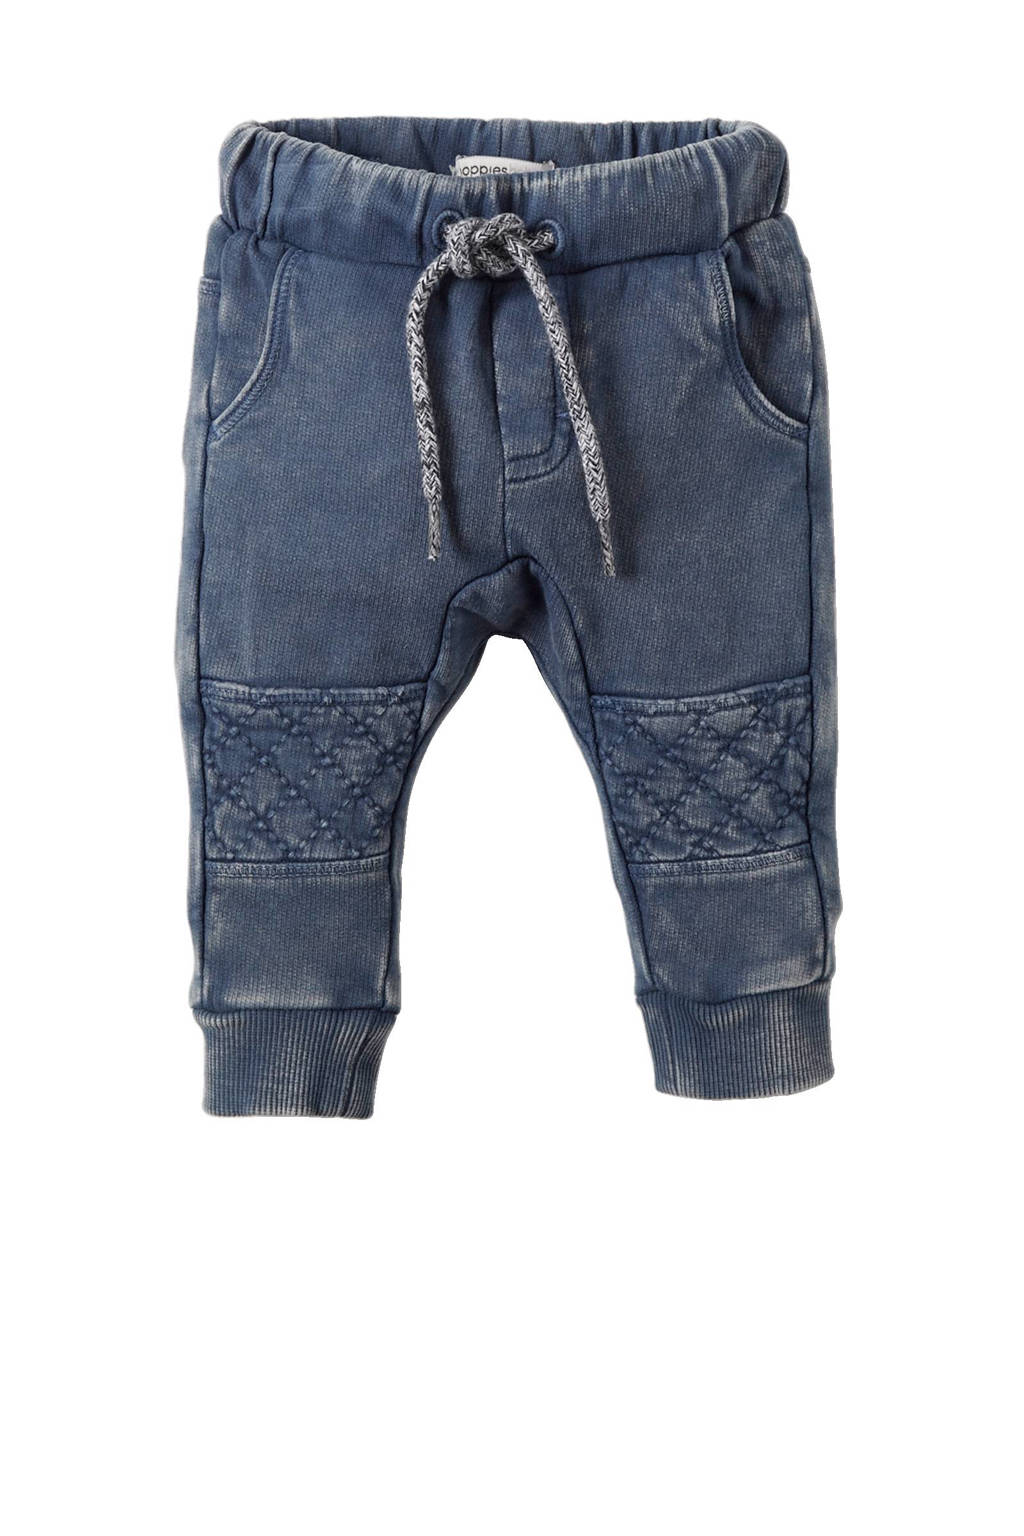 Noppies   baby sweatpants Troutdale blauw, middenblauw